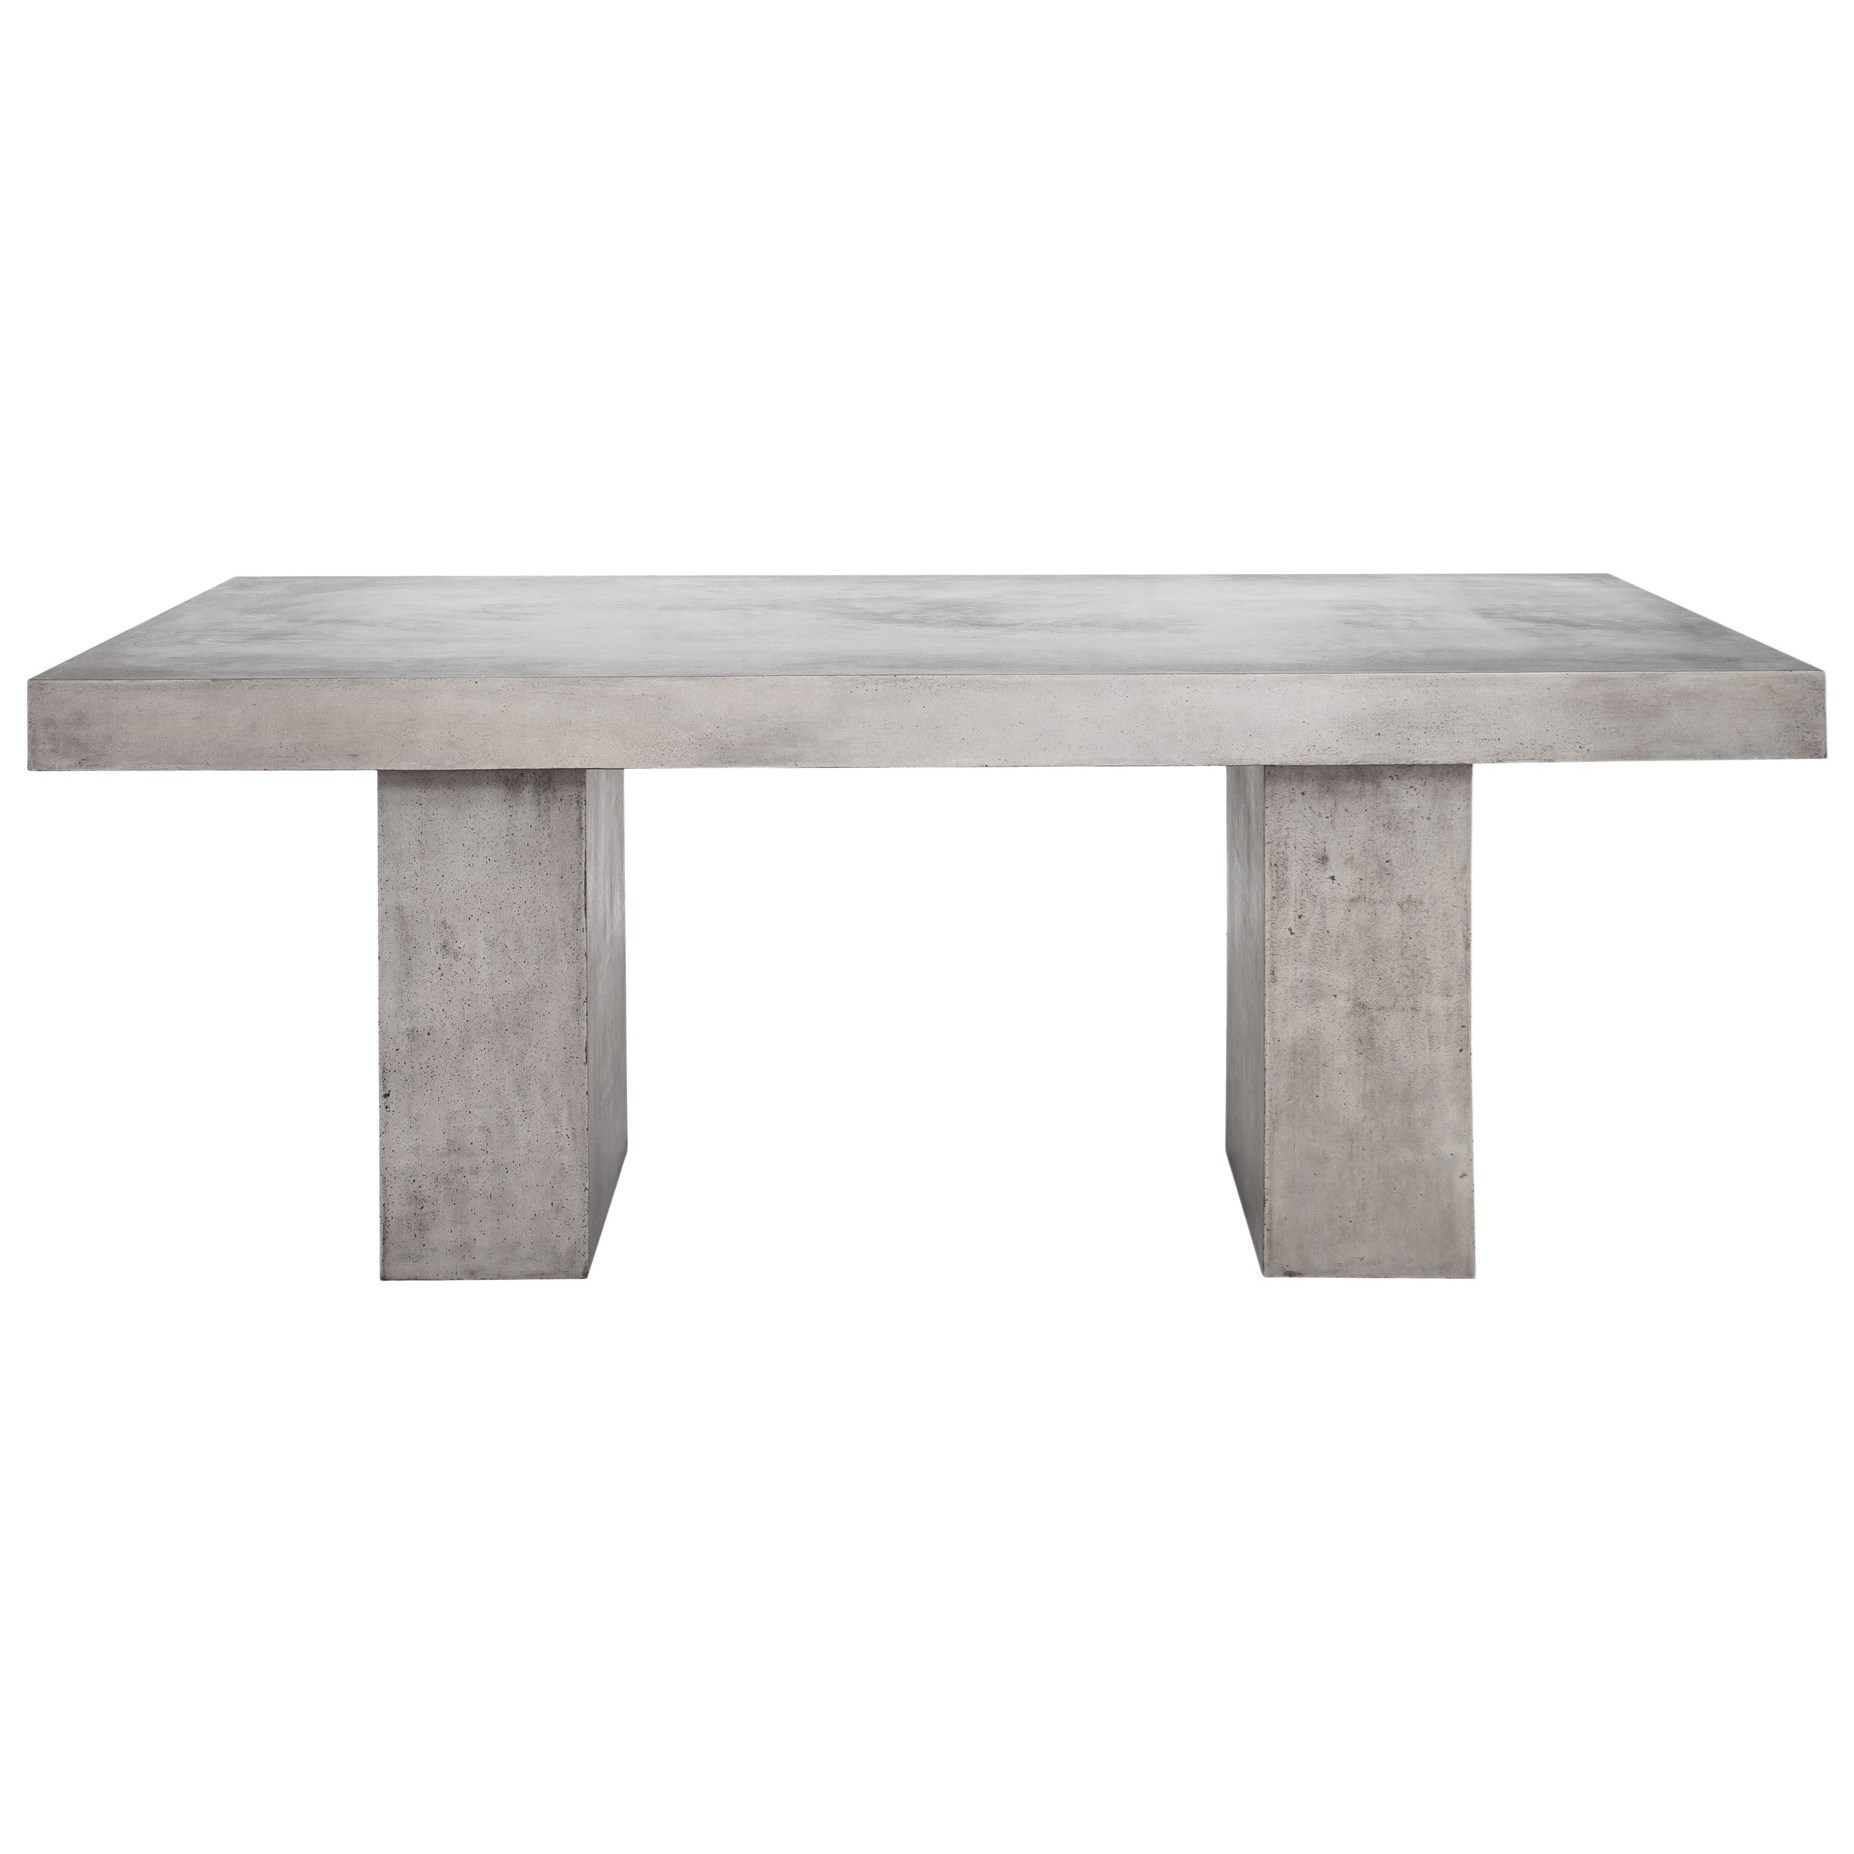 Aurelius Concrete Outdoor Dining Table by Moe's Home Collection at Stoney Creek Furniture